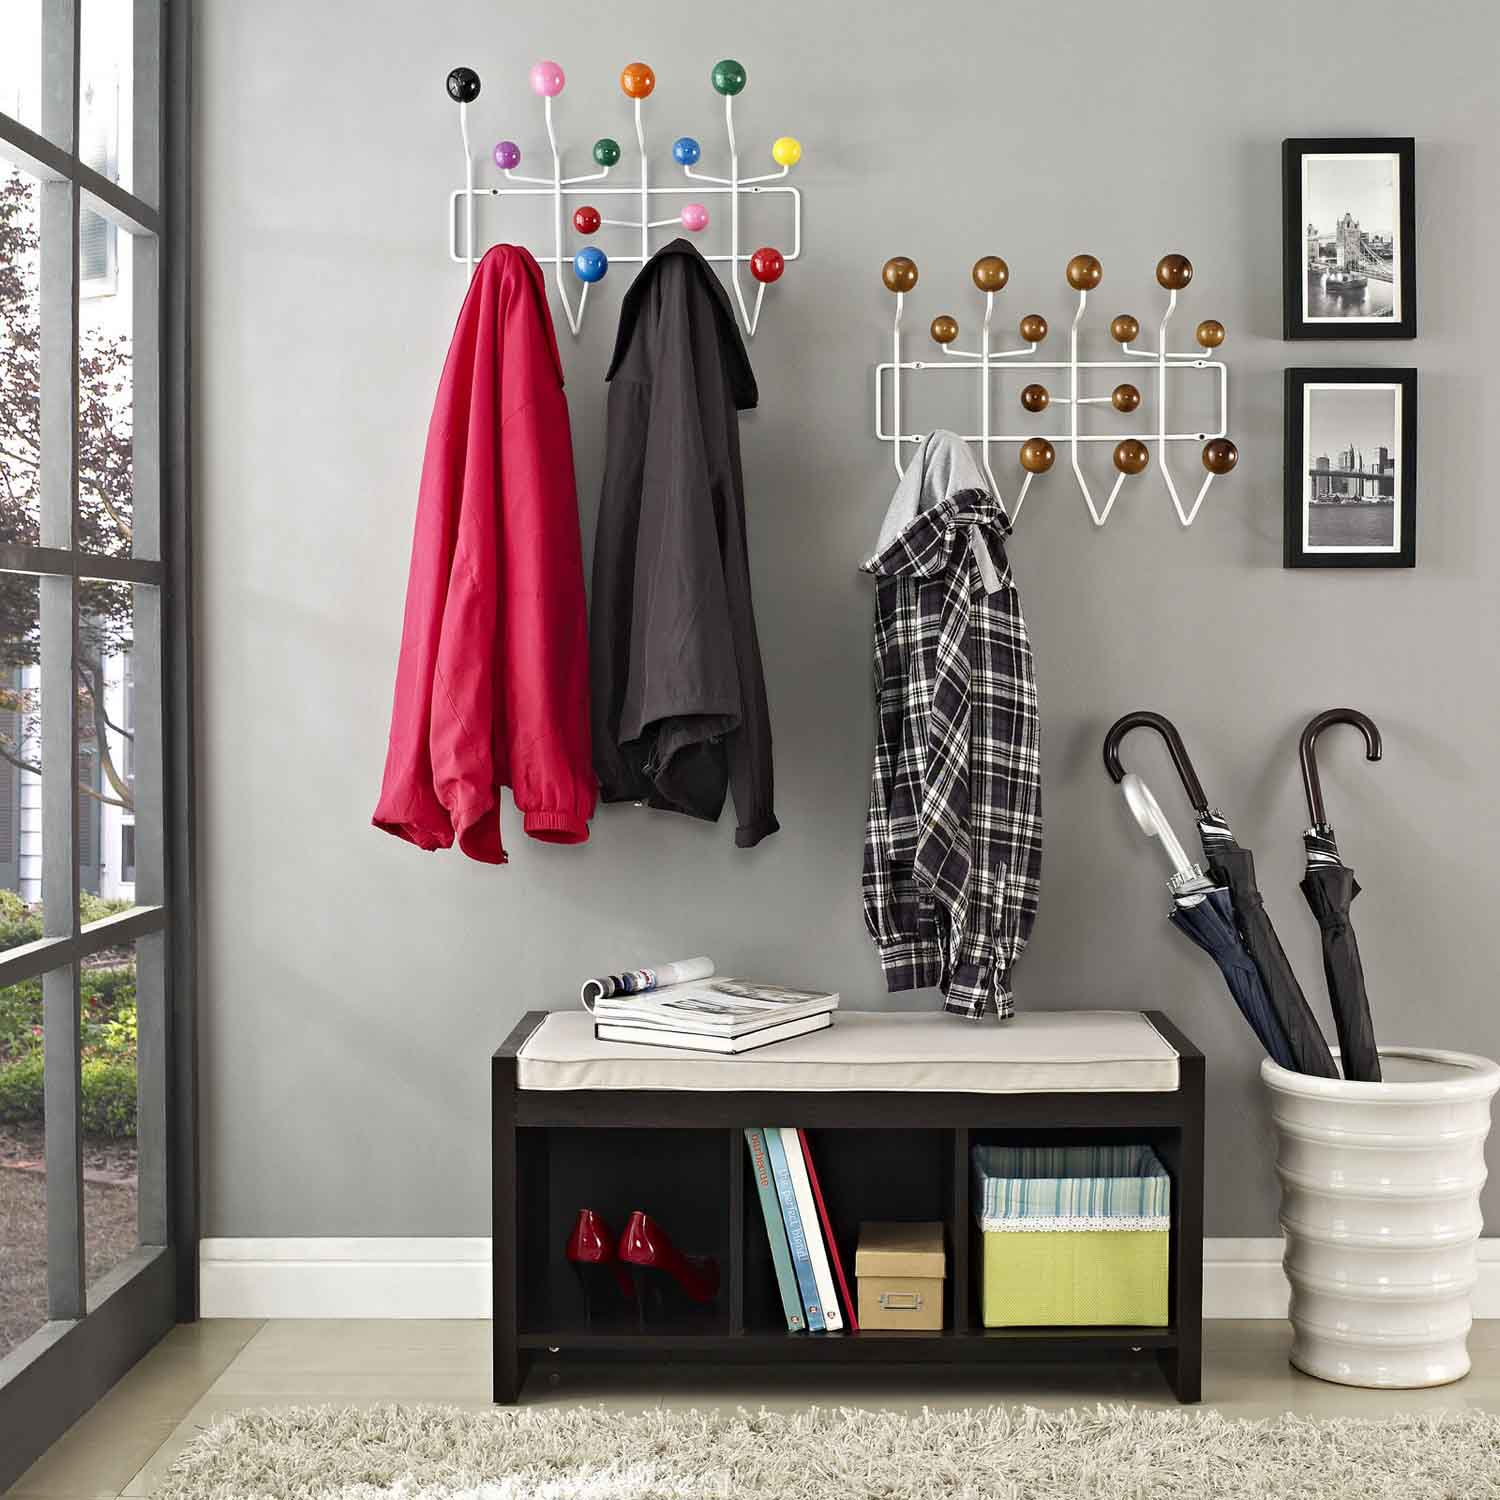 Modway Gumball Coat Rack - Multicolored